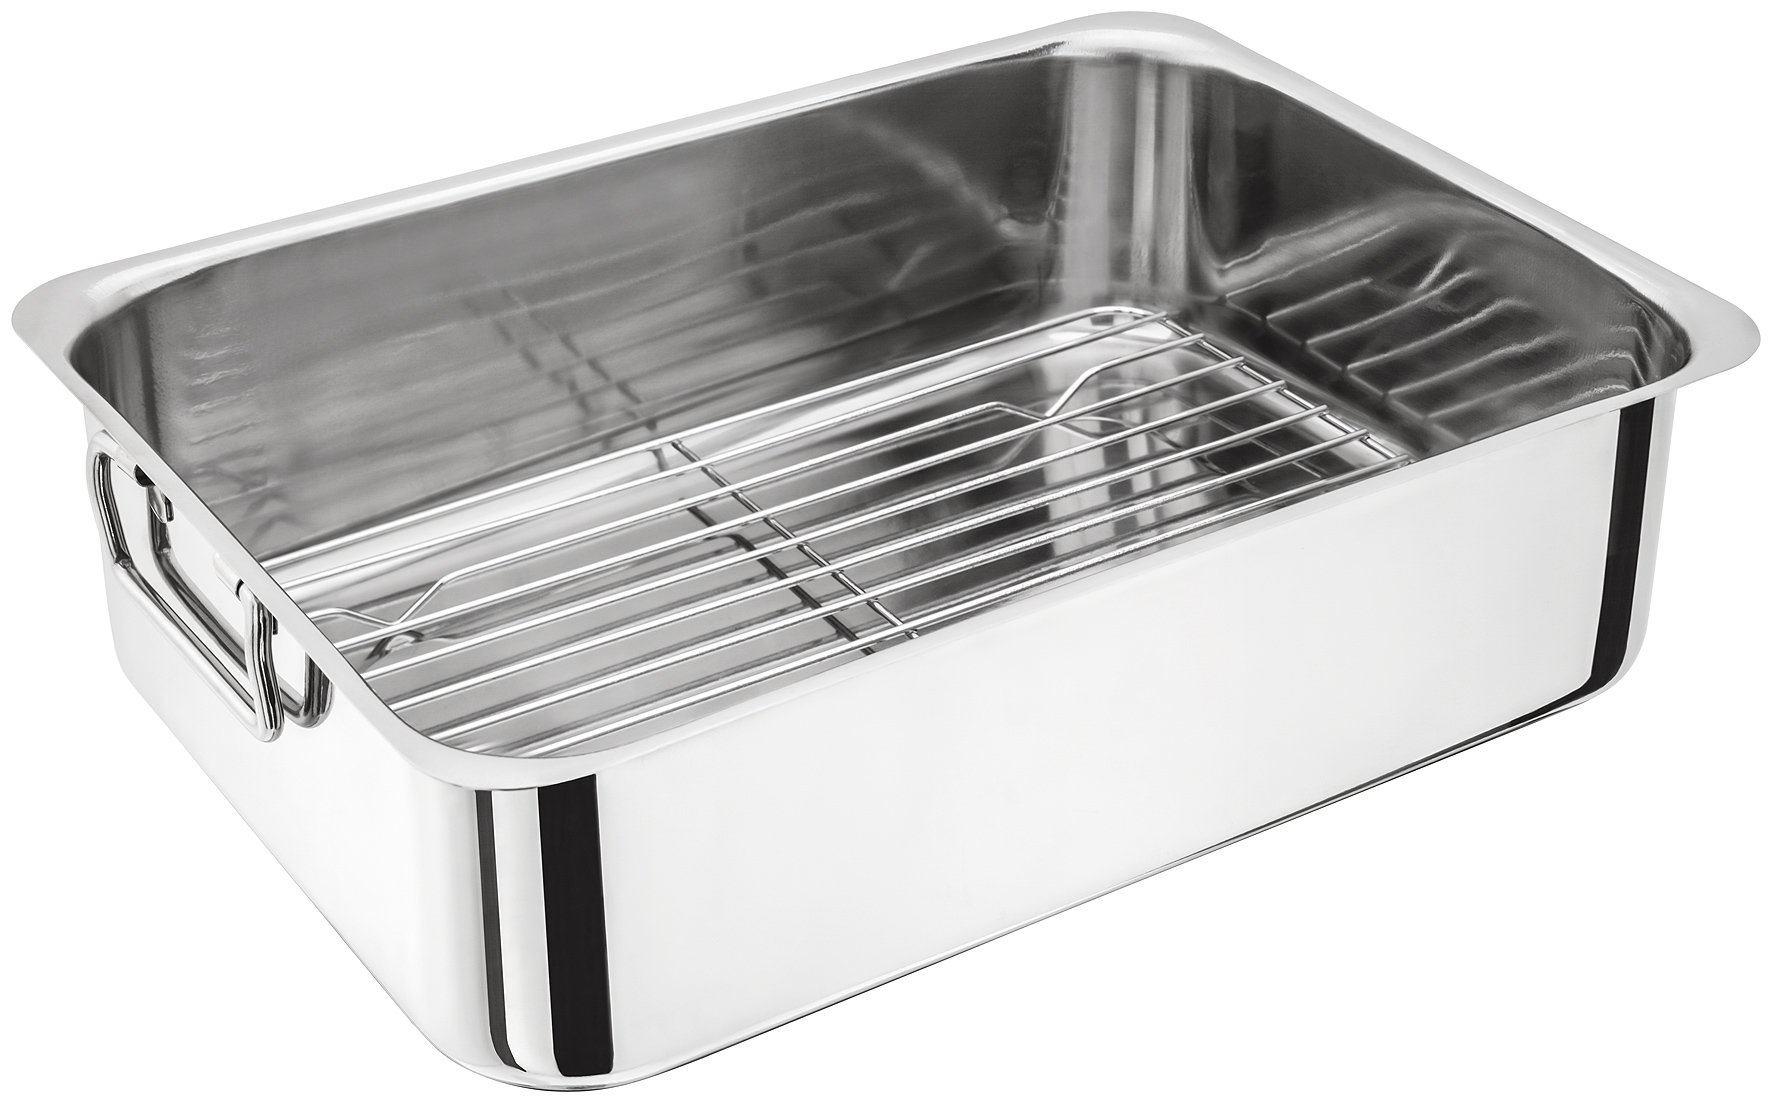 Judge Stainless Steel Chicken Turkey Beef Roasting Tray Pan Tin With Rack 37cm/14.5'' - H045